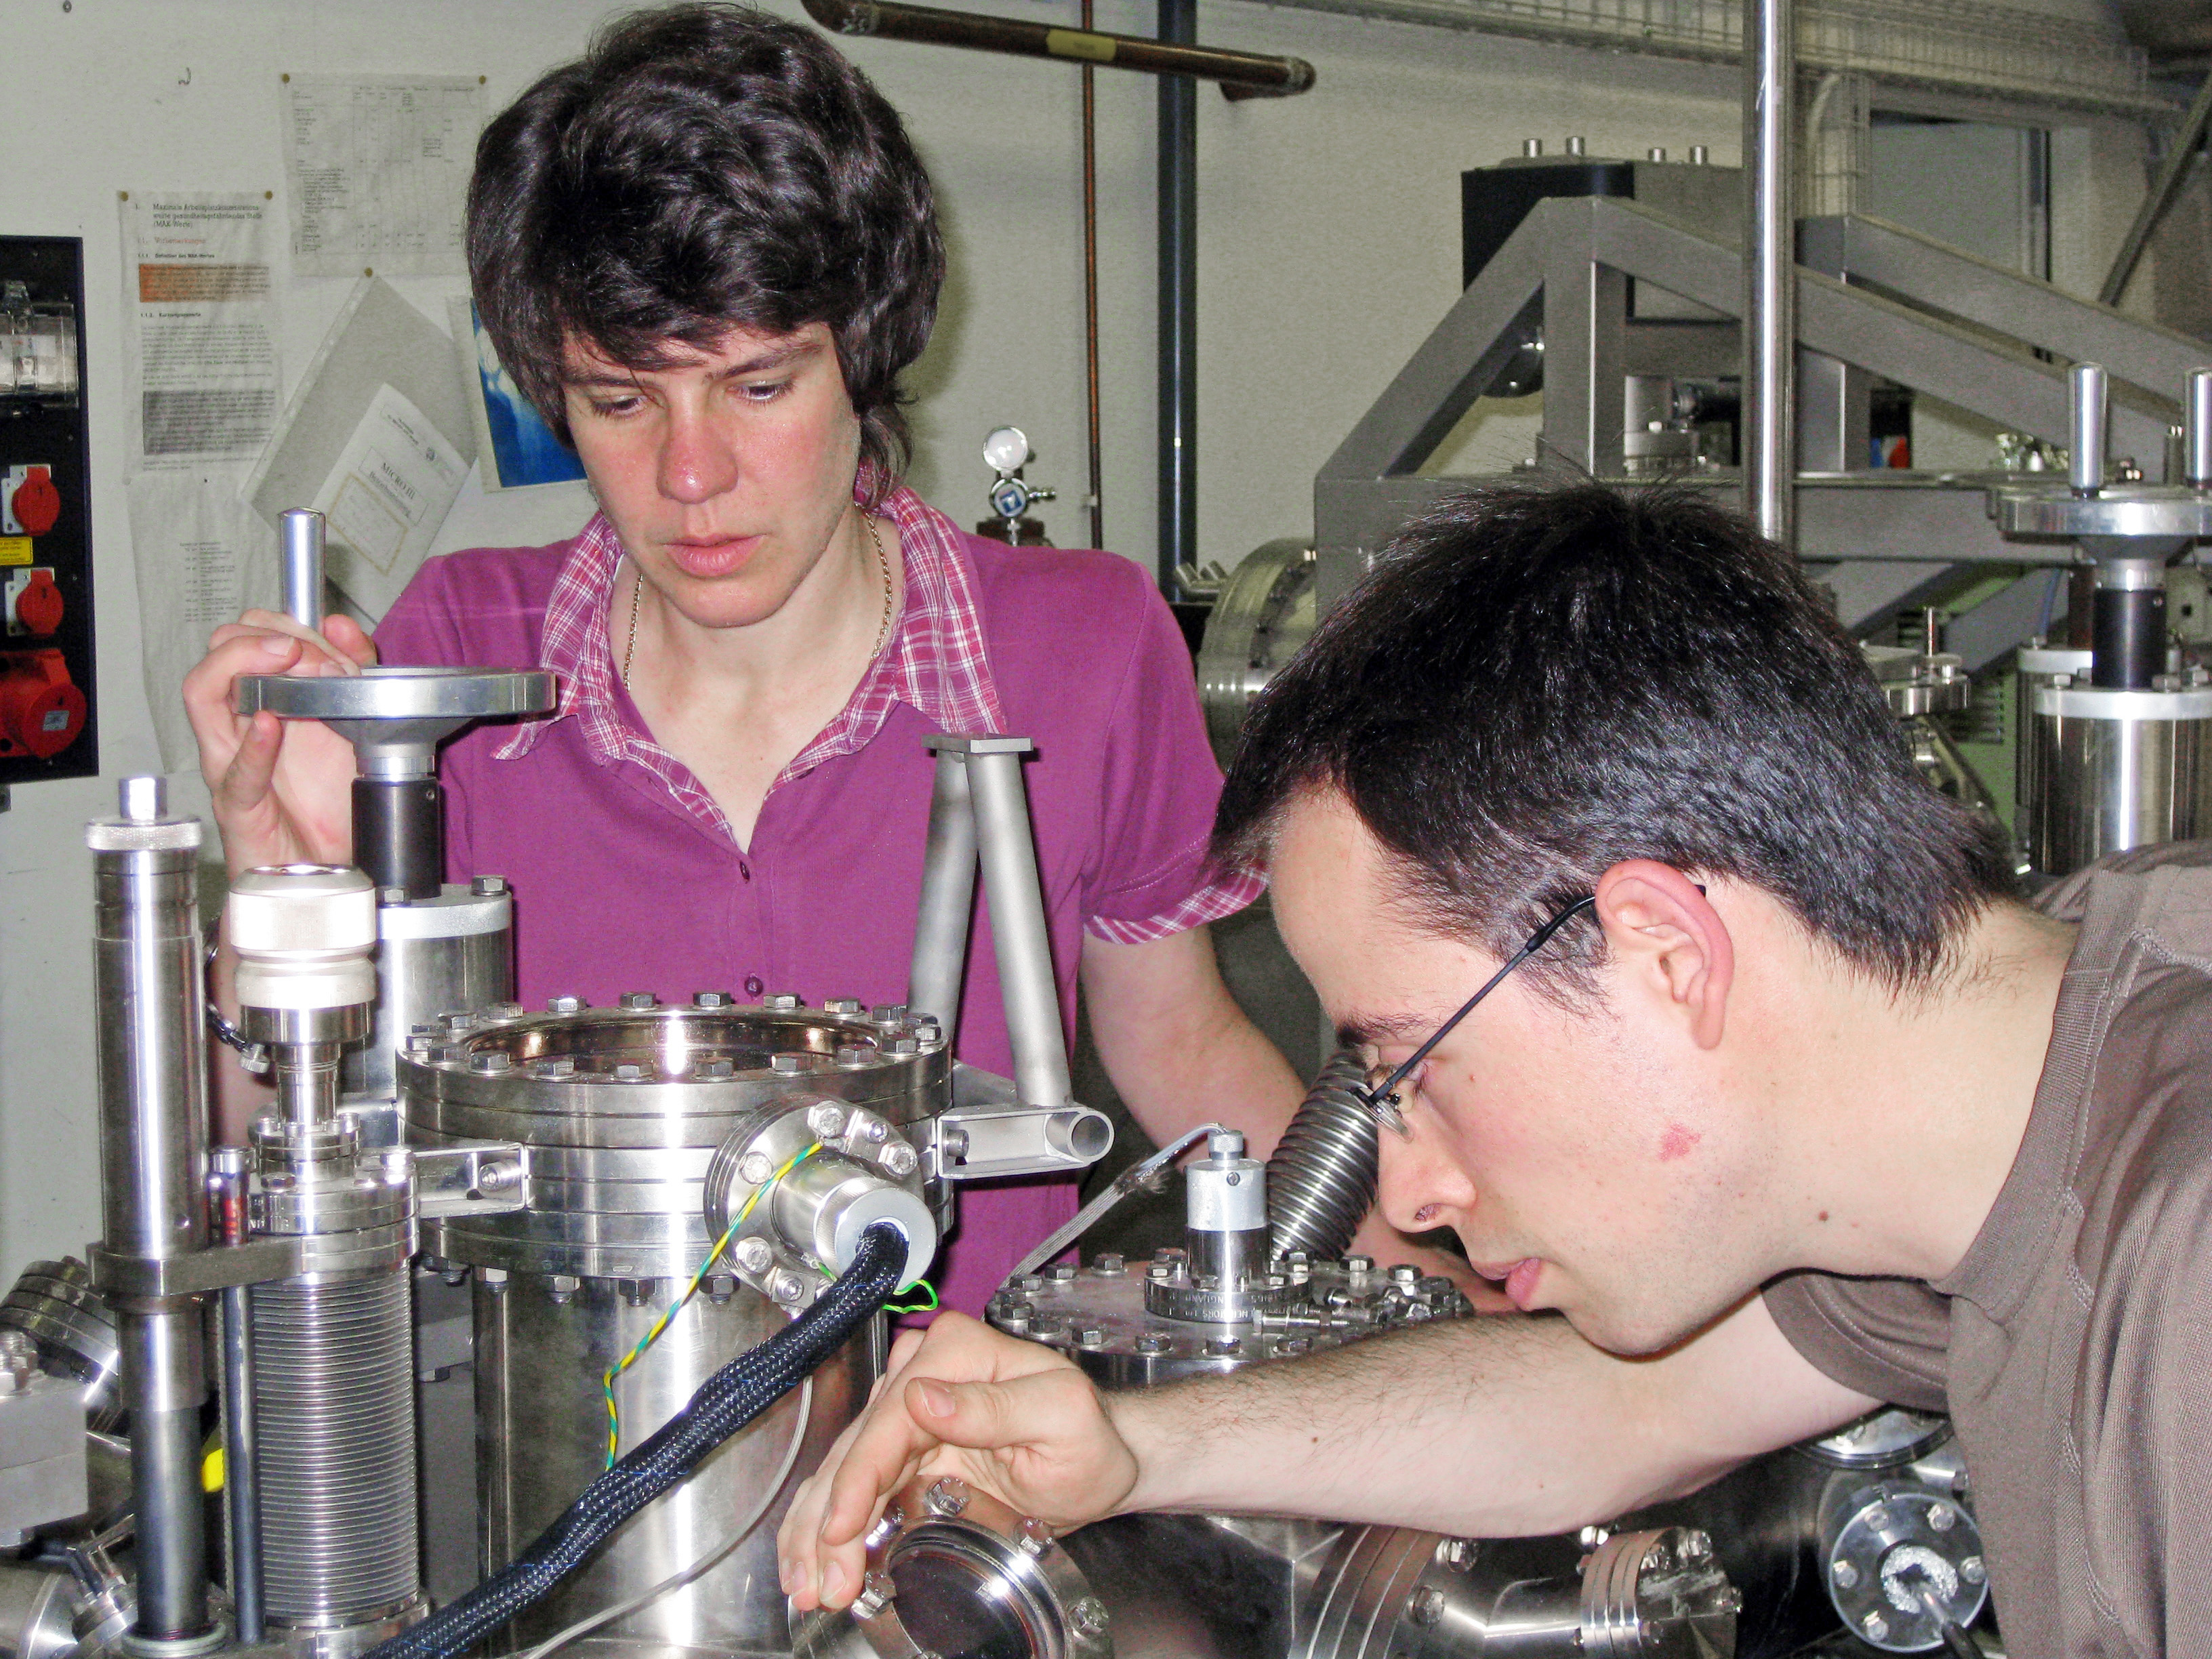 Teamwork: Meike Stöhr and Manfred Matena working on the ultrahigh vacuum system at the University of Basel. (Photo: University of Basel)